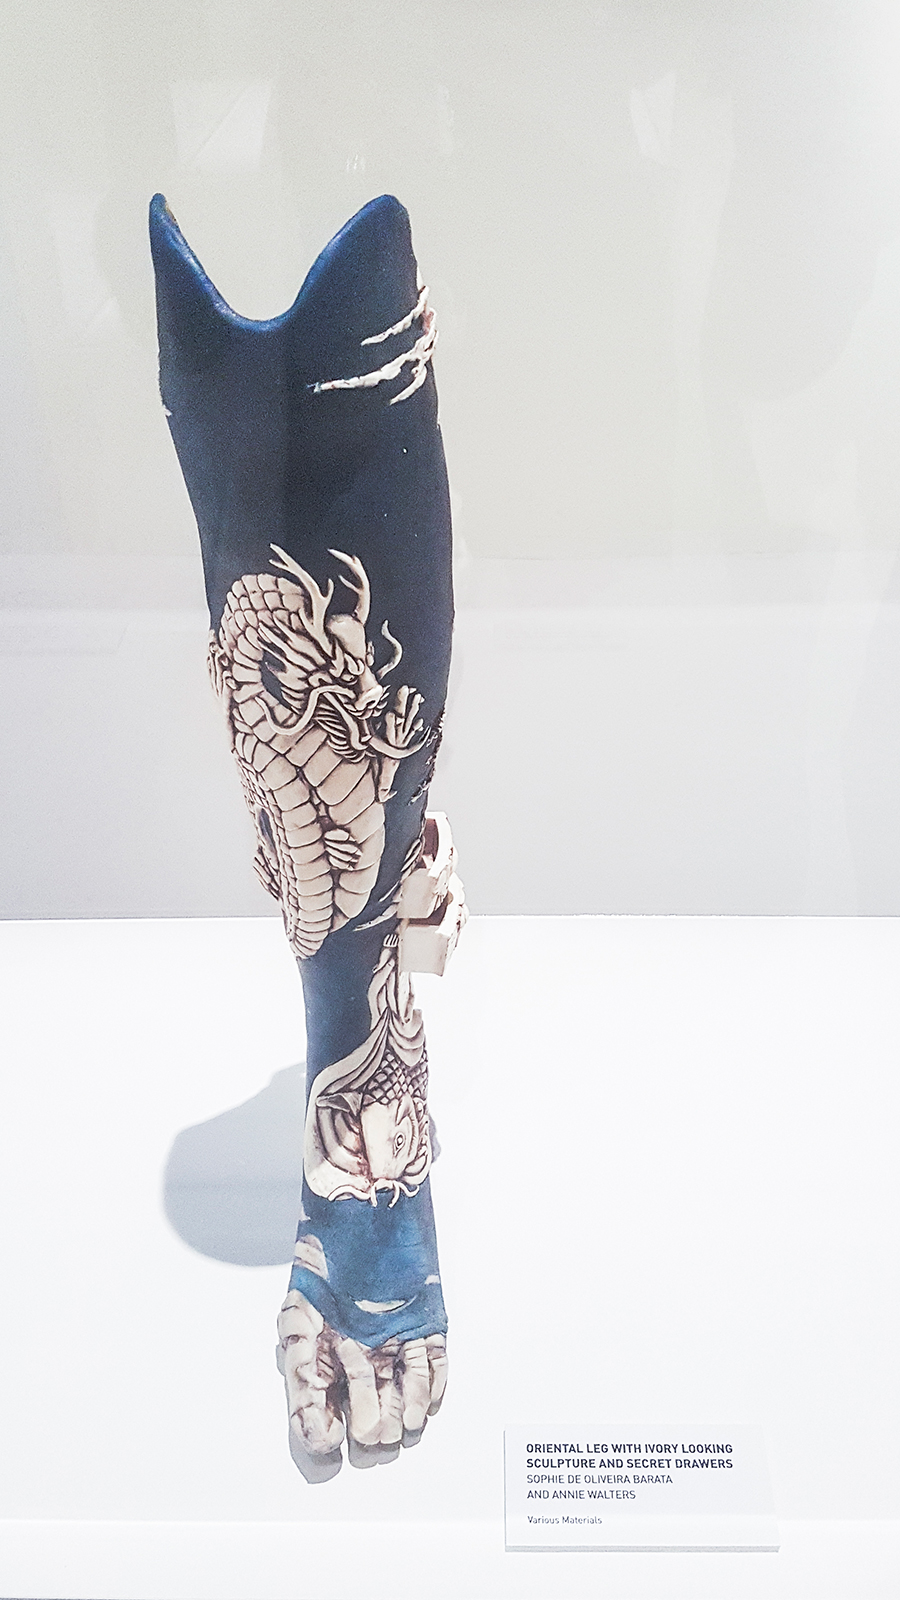 Intricate Prosthetic leg with drawer compartments by Sophie De Oliviera Barata and Annie Walters at the HUMAN+ The Future of Our Species exhibition, ArtScience Museum Singapore.